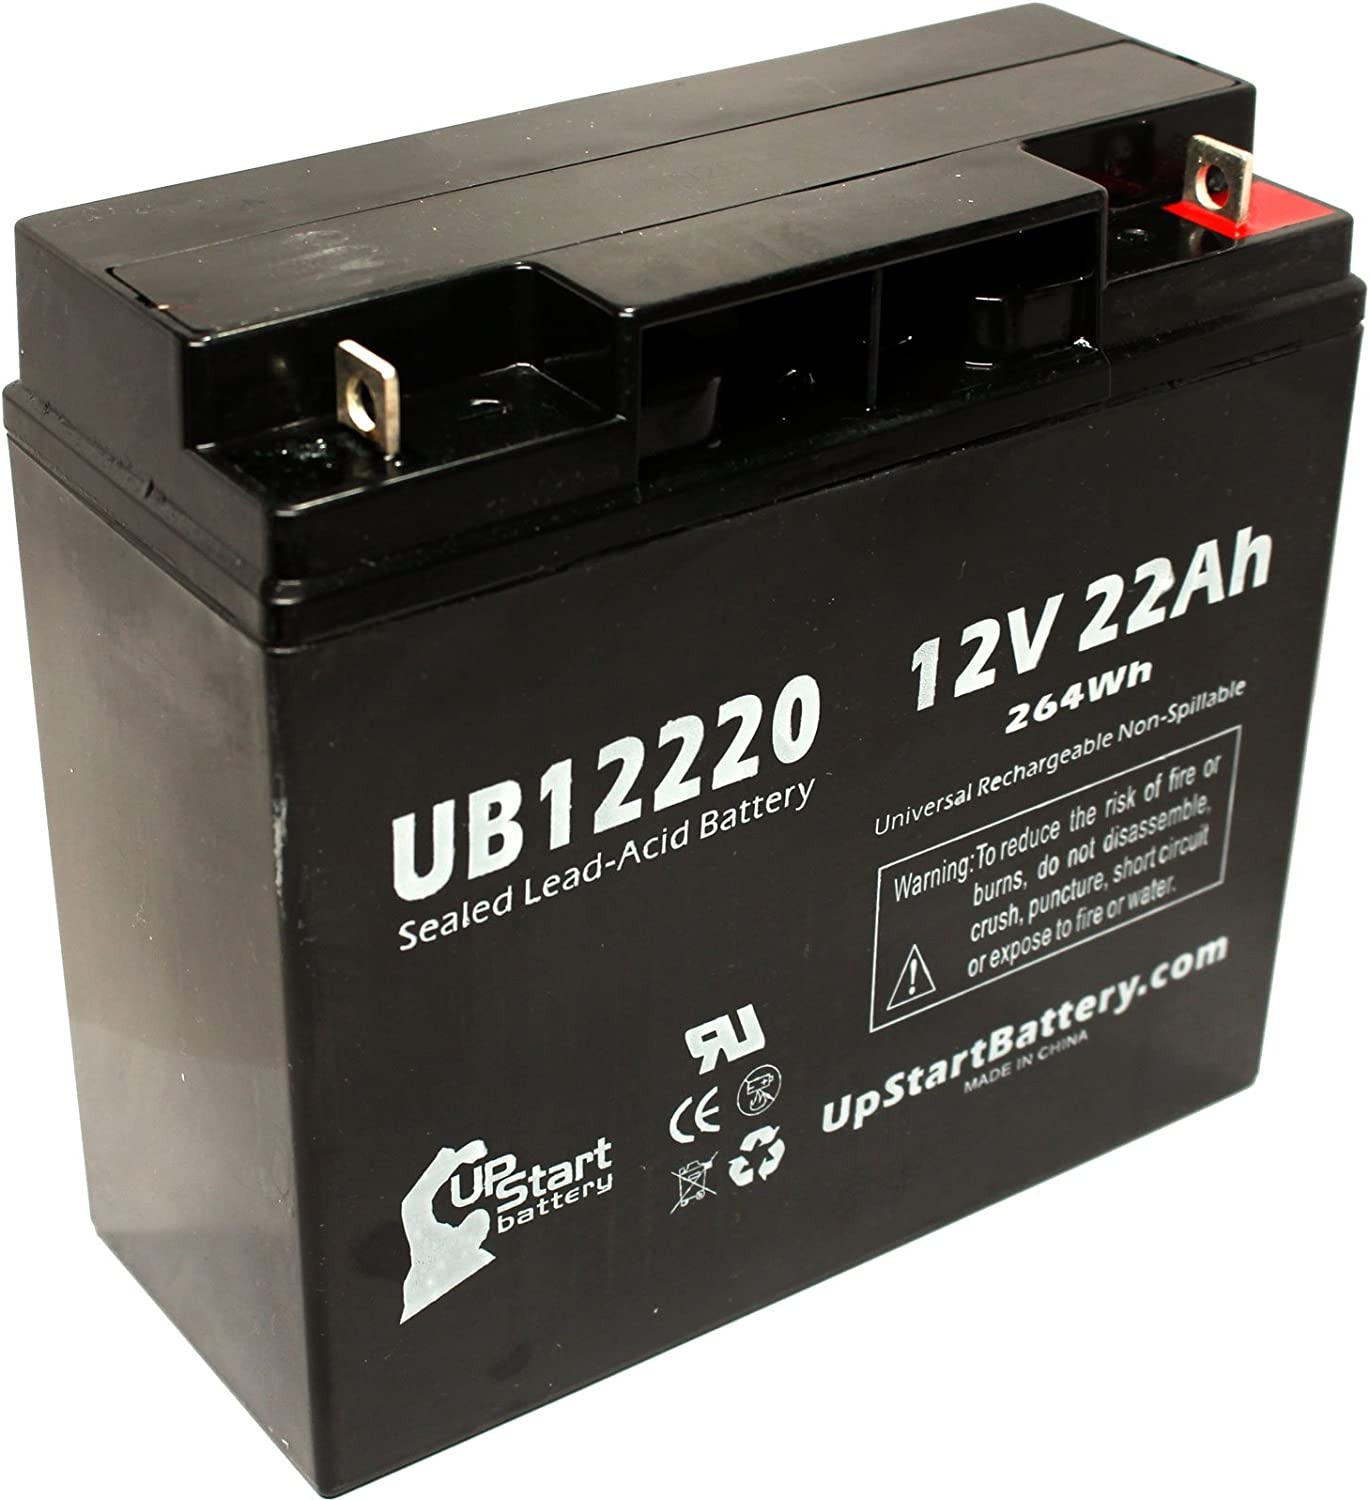 Replacement for SEALAKE FM12170 Battery - Replacement UB12220 Universal Sealed Lead Acid Battery (12V, 22Ah, 22000mAh, T4 Terminal, AGM, SLA)